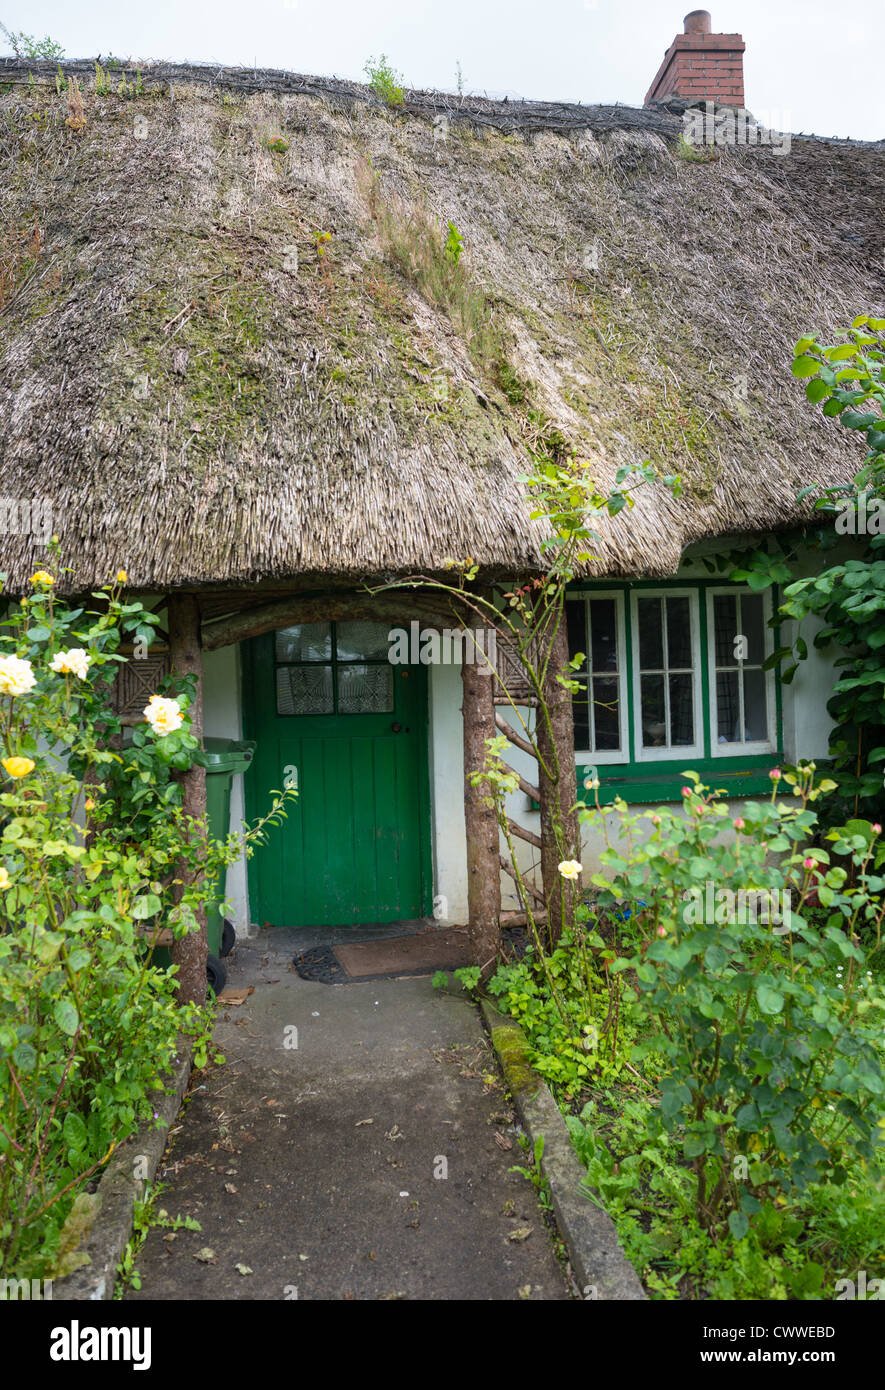 Traditional thatched cottage at Adare, county Limerick, Ireland. - Stock Image